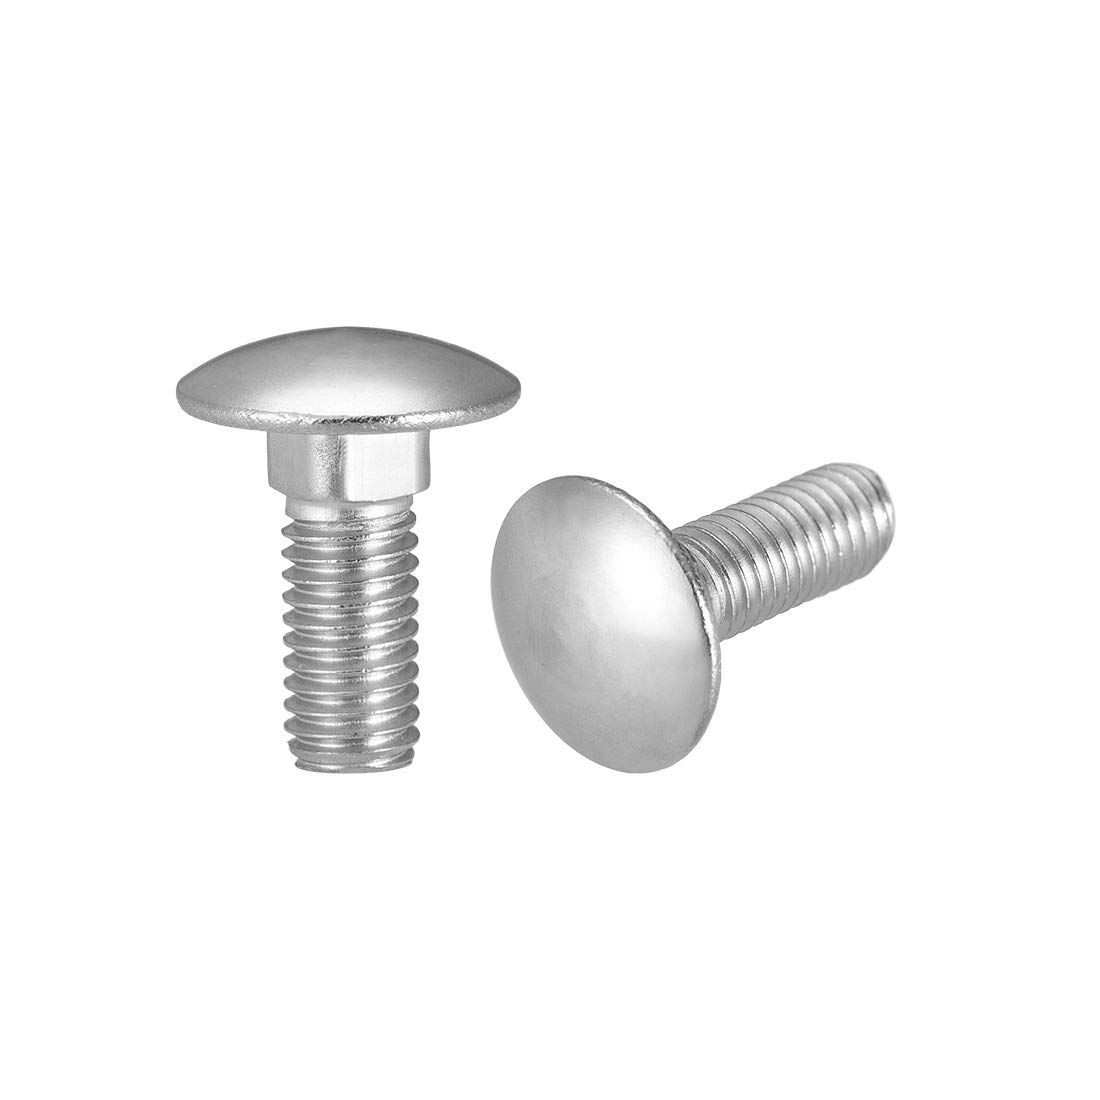 1//4-20 Thread Size Small Parts FSC14150CB5Z Round Grade 5 Square-Neck Carriage Bolt Zinc Plated Hex Pack of 50 1-1//2 Long Steel